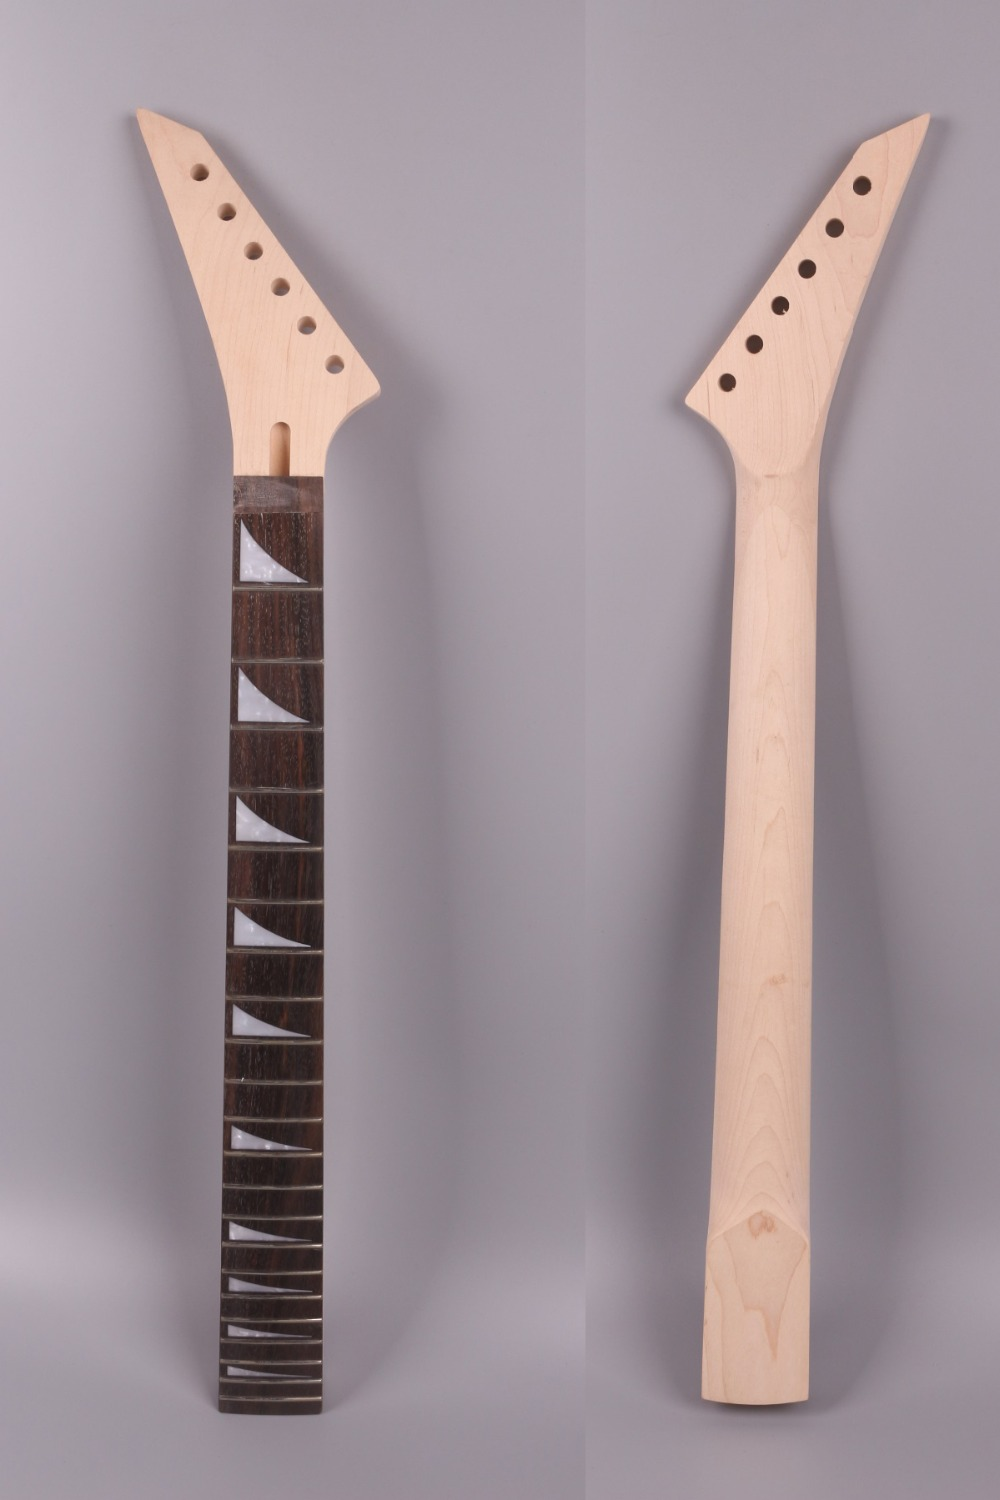 Yinfente Electric Guitar Neck 22 Fret Reversed Head Rosewood Fretboard 25.5 Inch Maple Locking nut Shark Inlay #13 yinfente electric guitar neck 22 fret reversed head rosewood fretboard 25 5 inch maple locking nut shark inlay 13